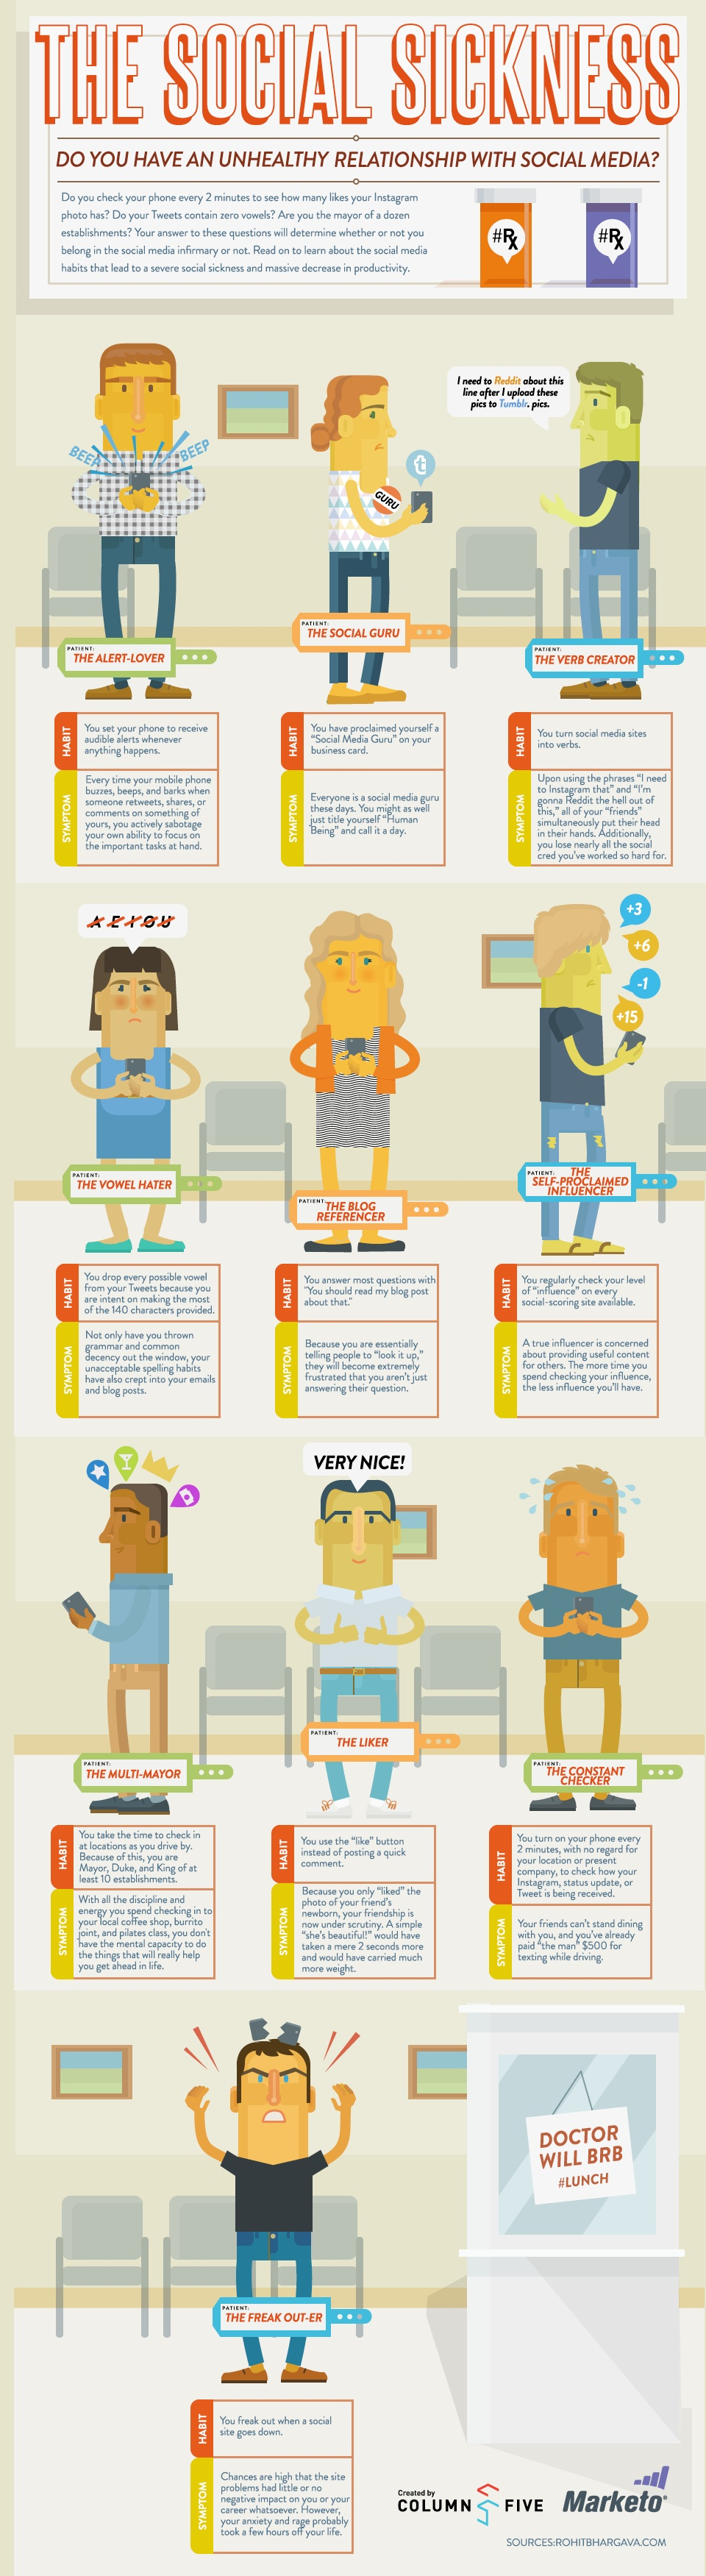 Social Media Misconduct-Infographic